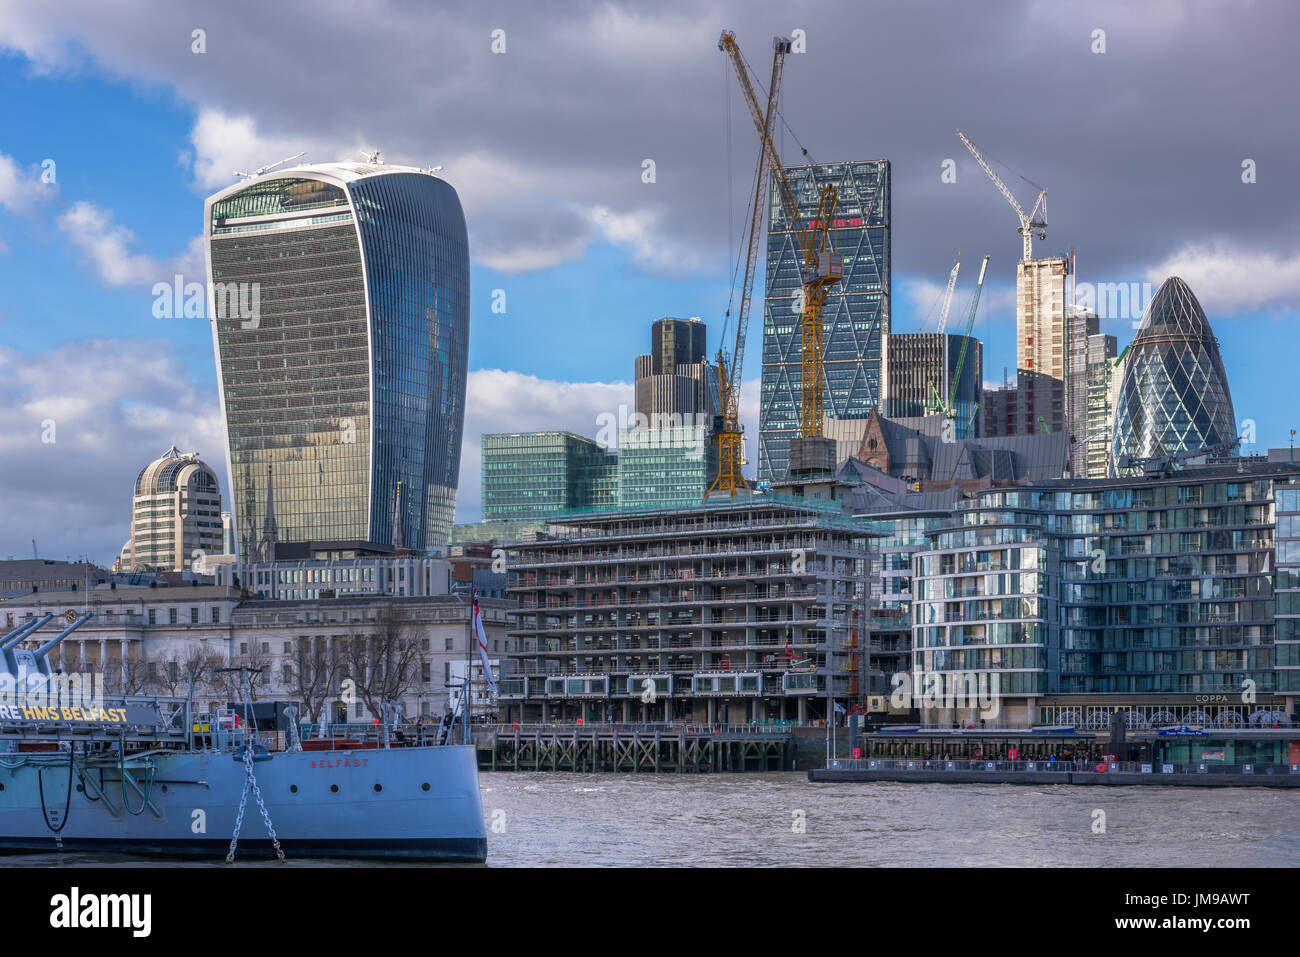 Tower cranes dominate the skyline as development in the heart of the city of London moves on at a pace. - Stock Image